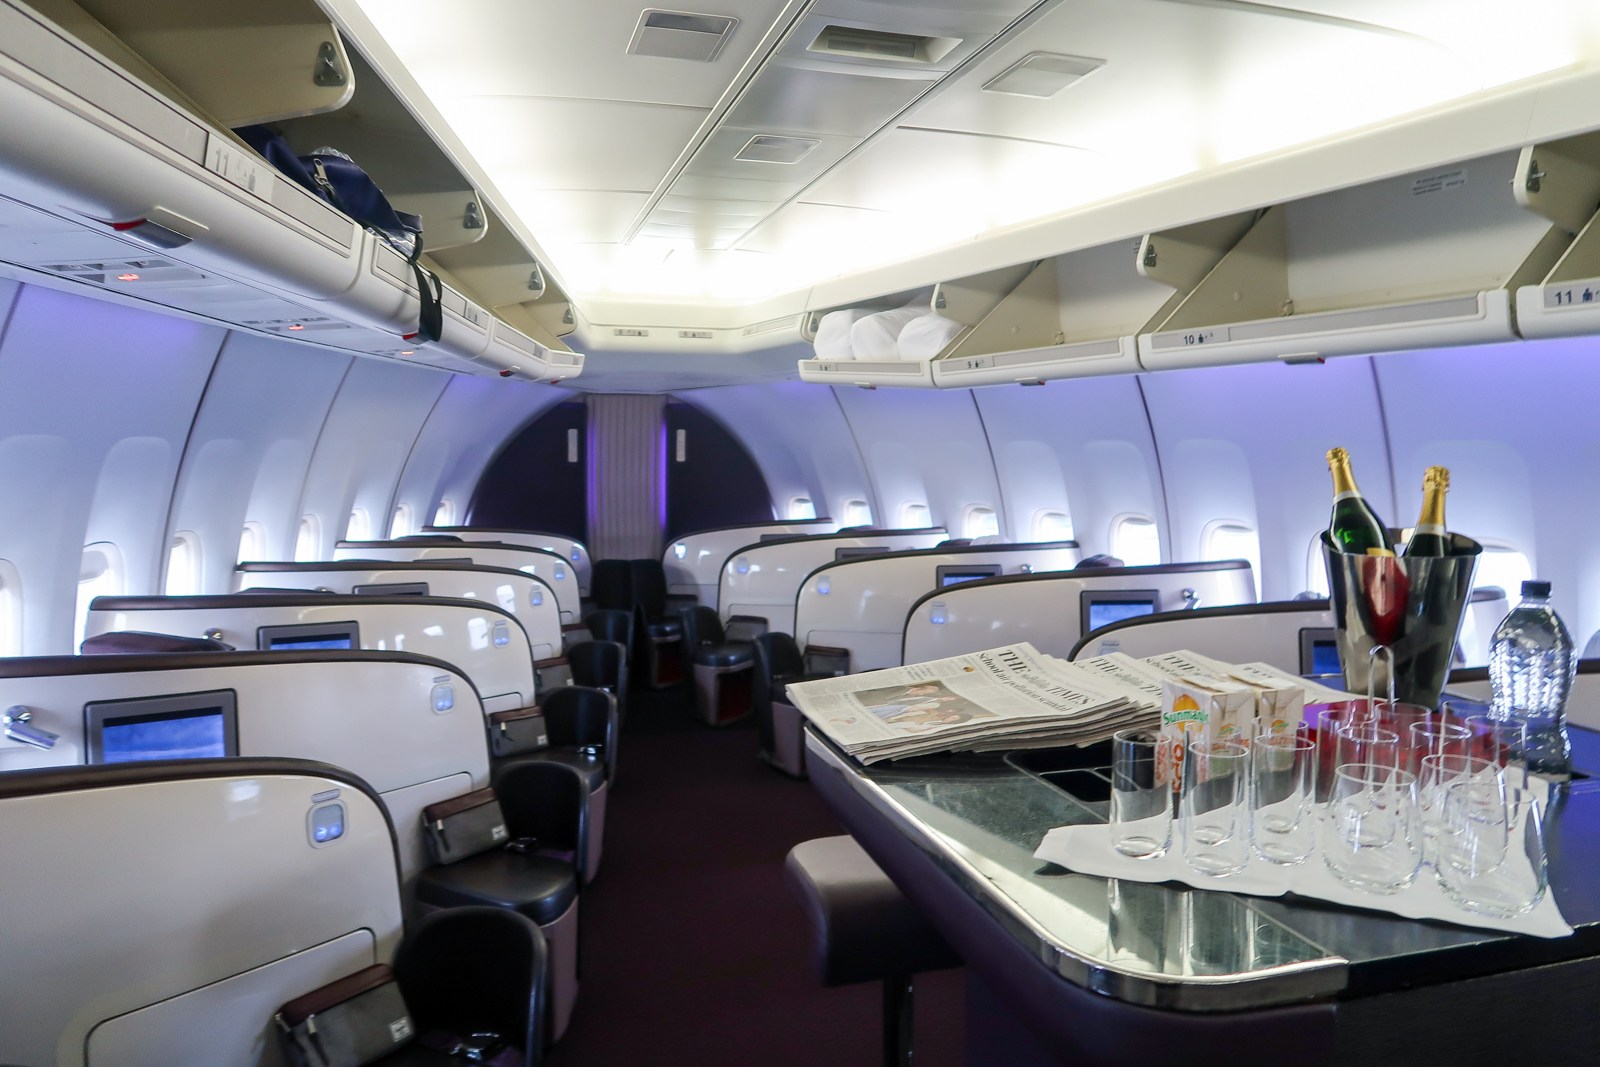 Virgin Atlantic 747 Upper Class Interior